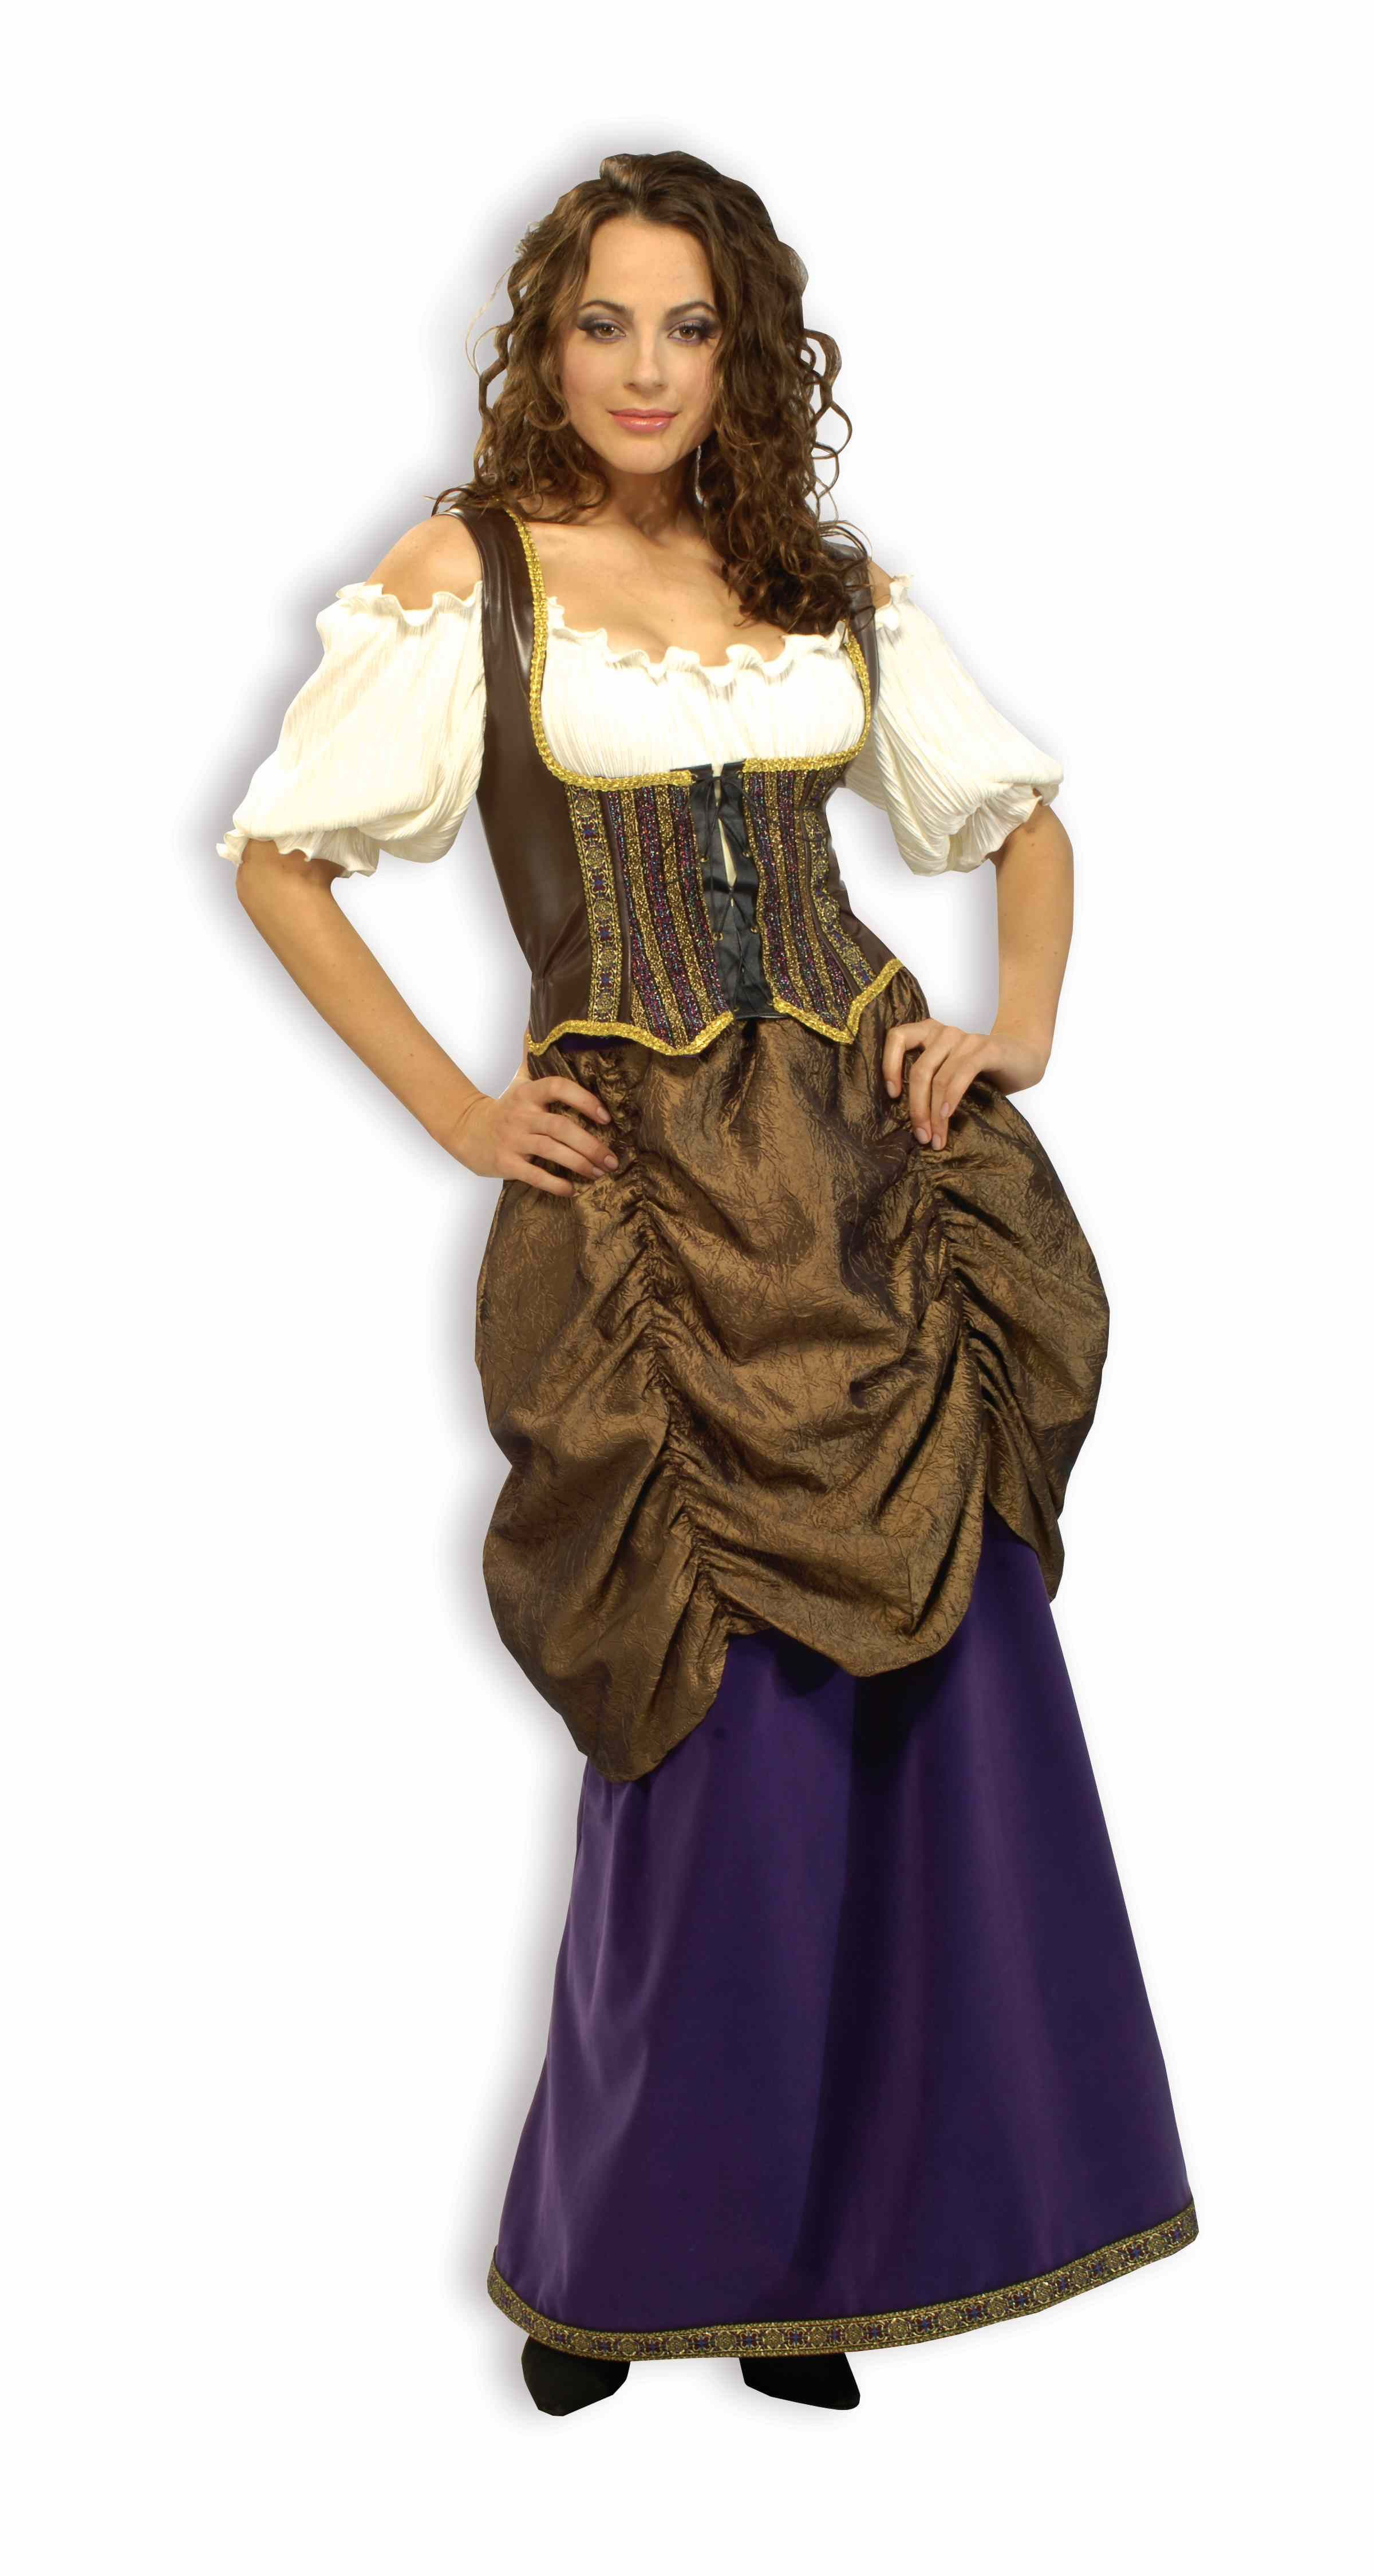 Gypsy Pirate Wench Halloween Costume - This gorgeous 3 piece velvet taffeta and faux leather deluxe Pirate Wench costume is the costume youu0027ve been looking ...  sc 1 st  Pinterest & Gypsy Pirate Wench Halloween Costume | Pinterest | Pirate wench ...